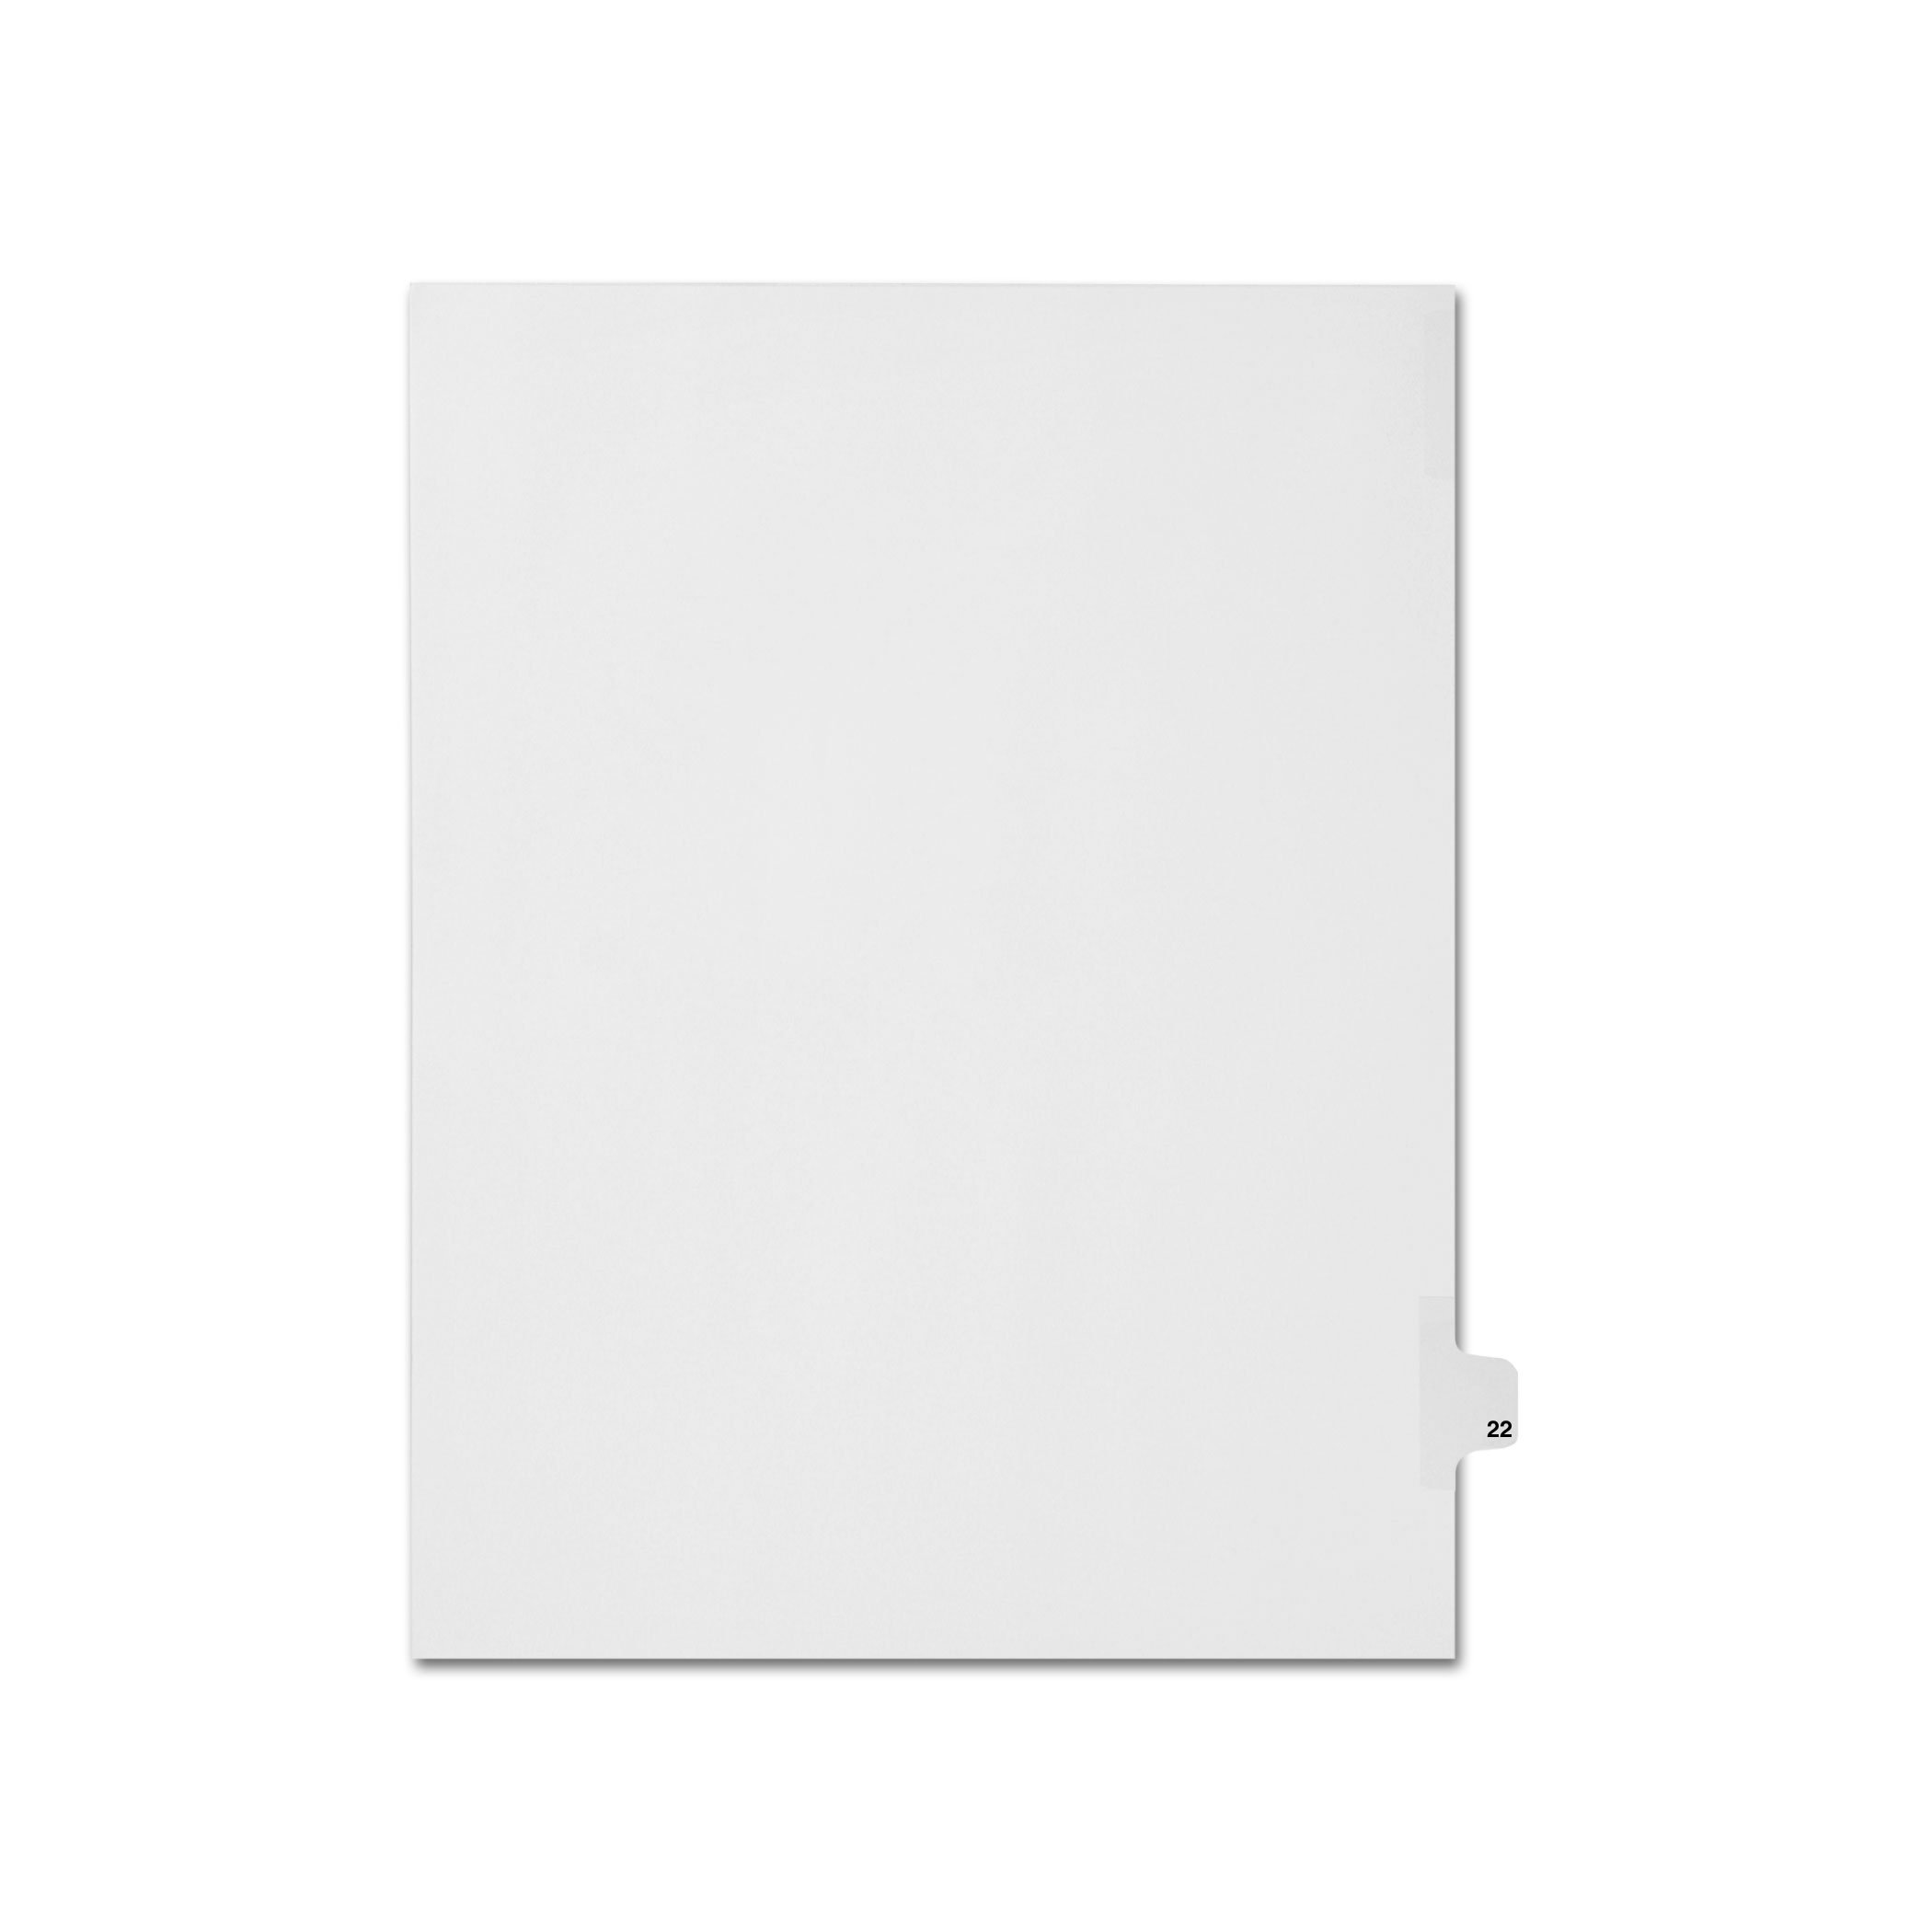 AMZfiling Individual Legal Index Tab Dividers, Compatible with Avery- Number 22, Letter Size, White, Side Tabs, Position 22 (25 Sheets/pkg)